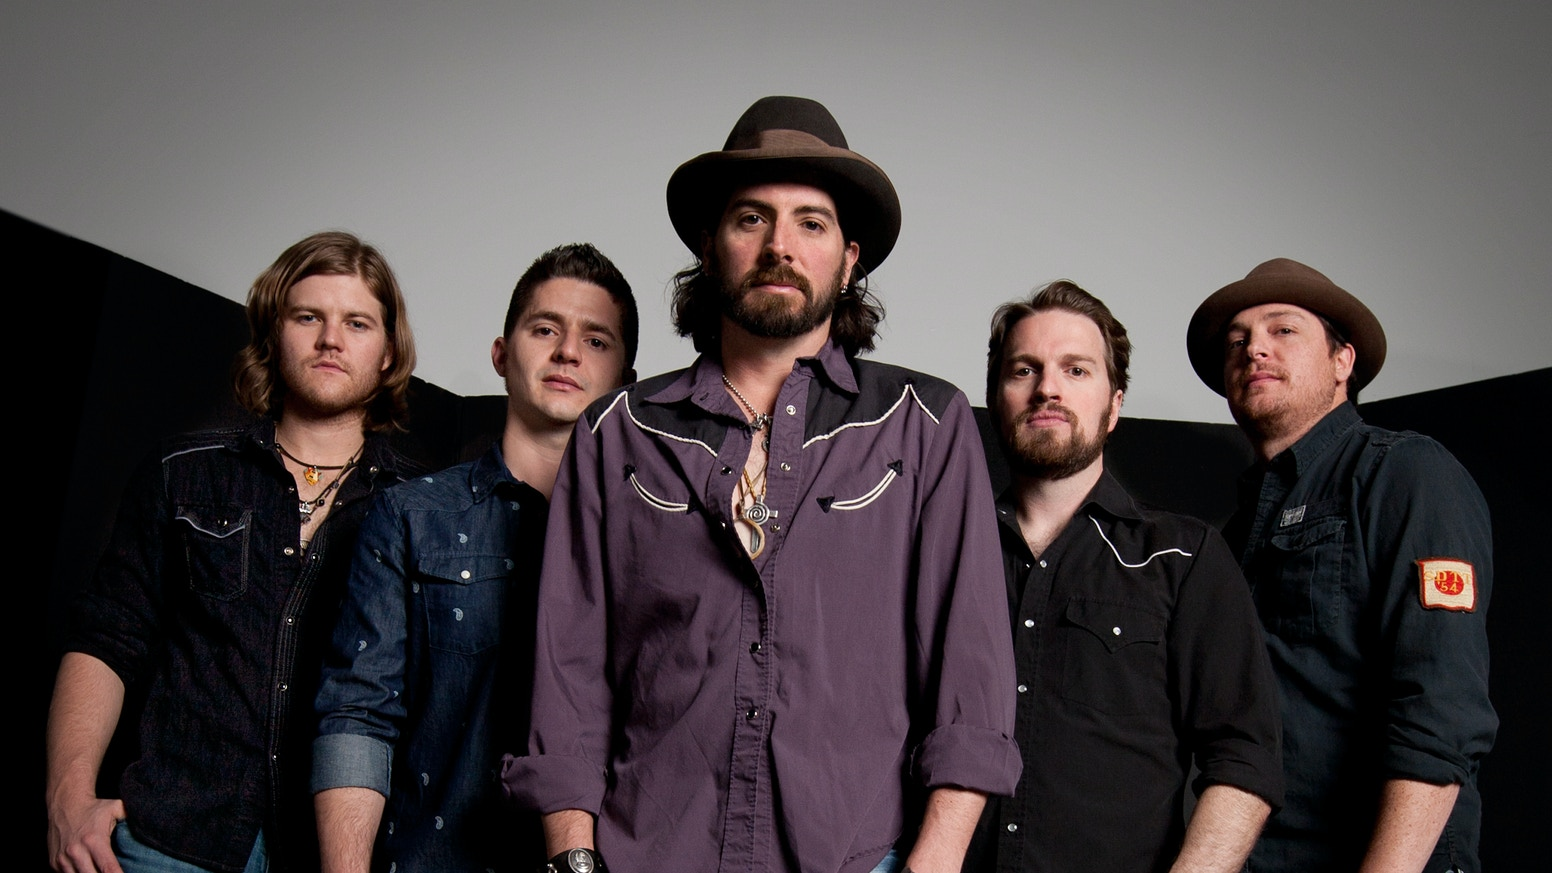 Micky and the Motorcars 2014 Studio Album by Micky and the